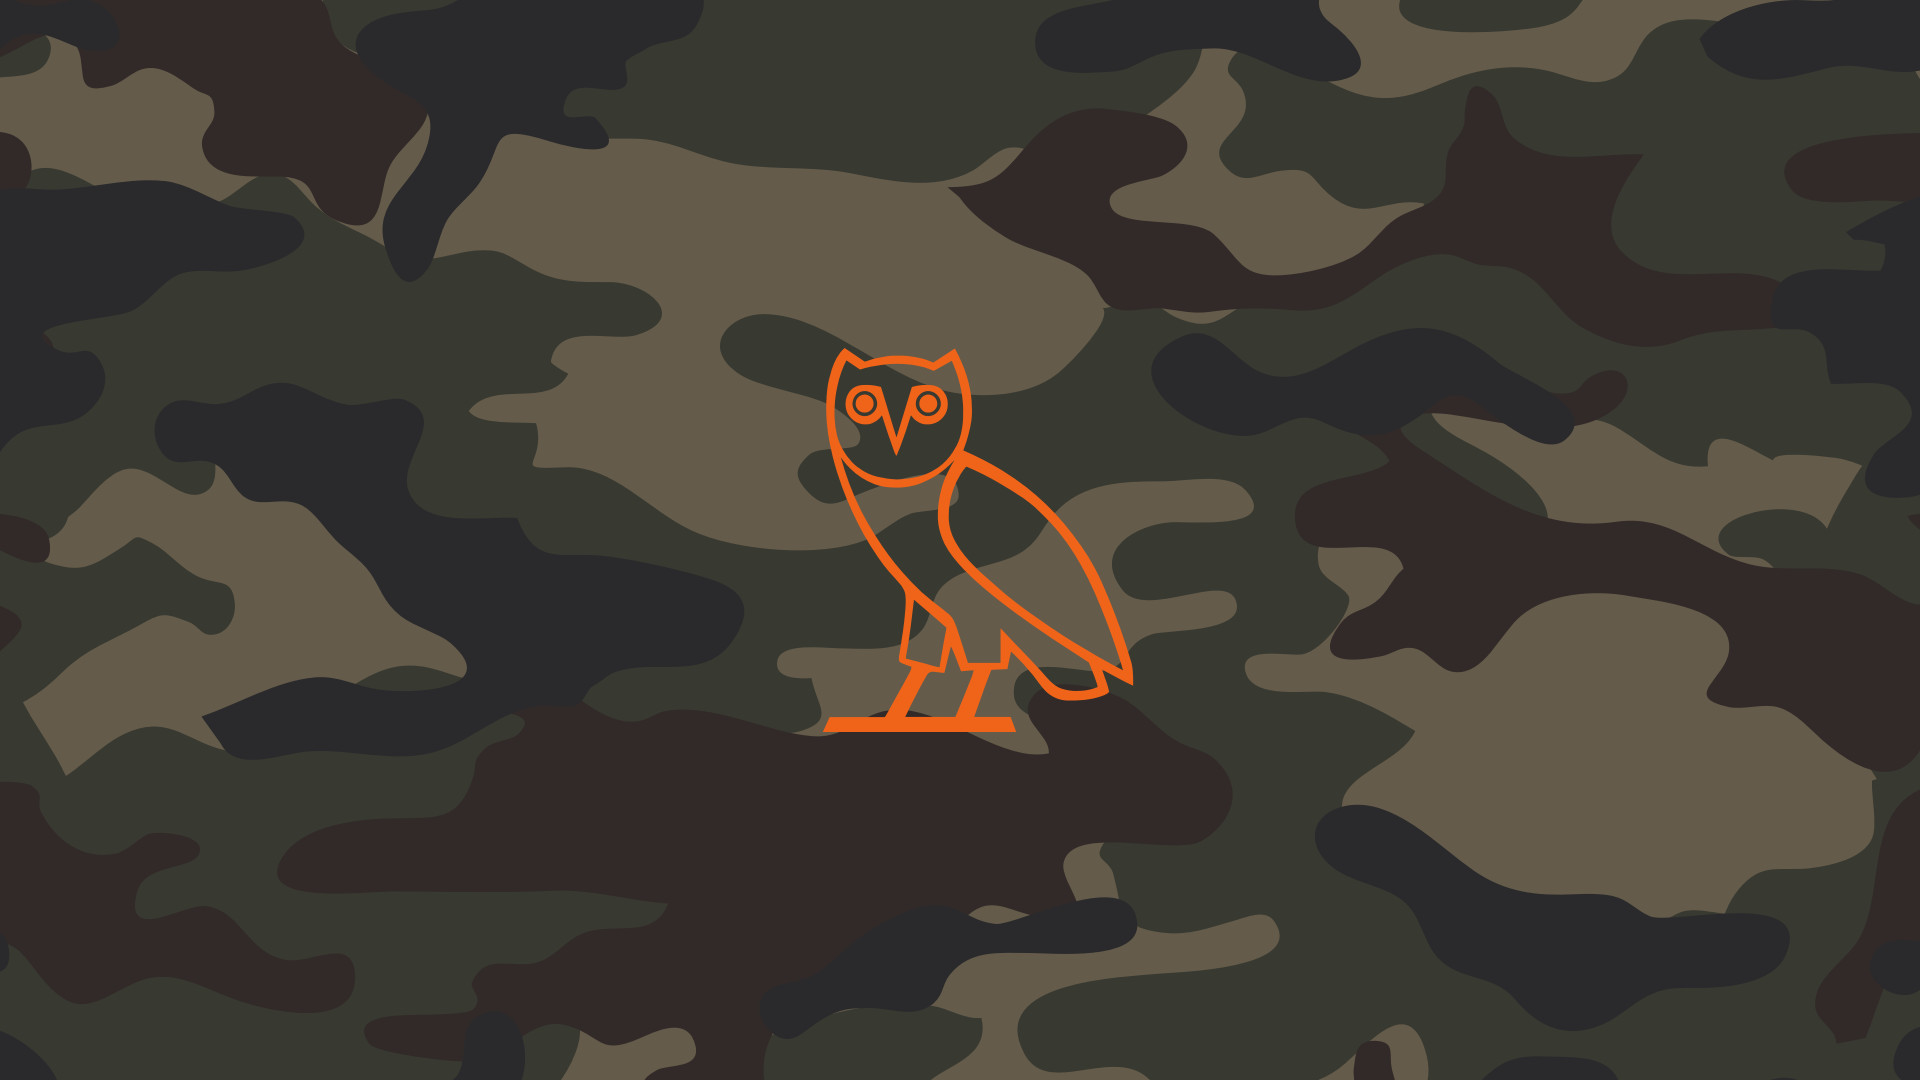 Ovo Backgrounds 22434